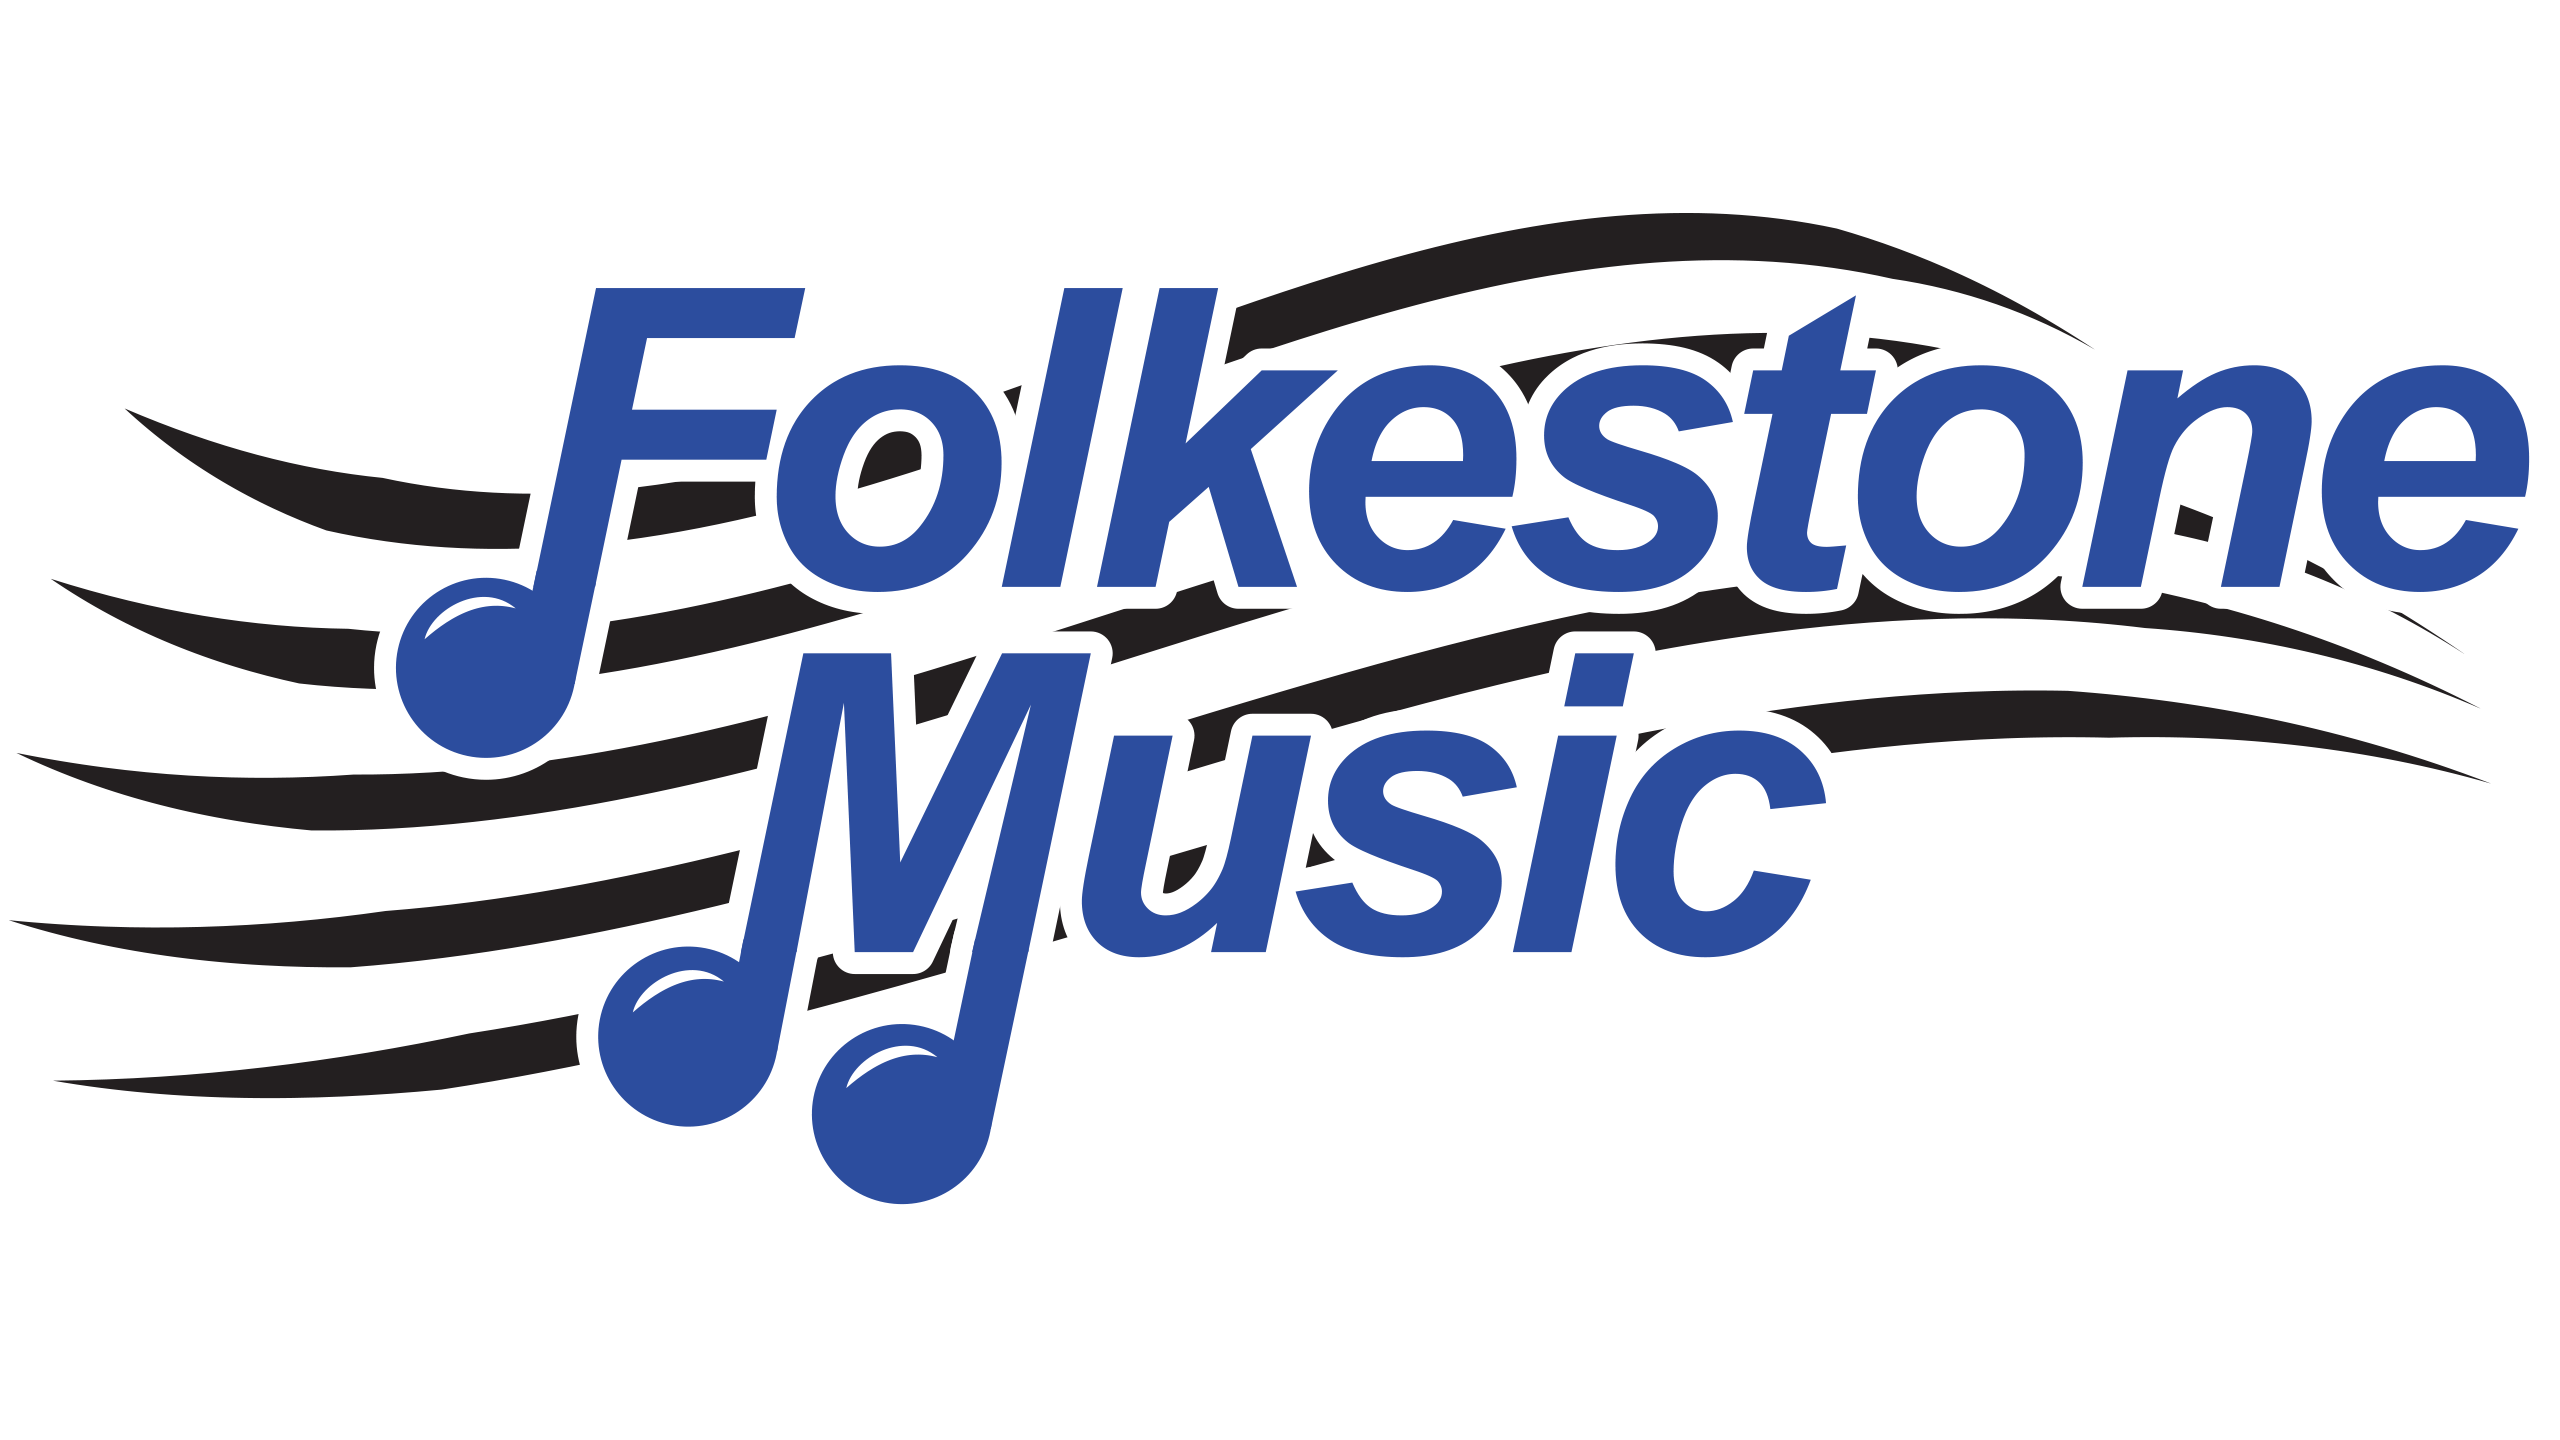 Folkestone Music Live Music Whats On